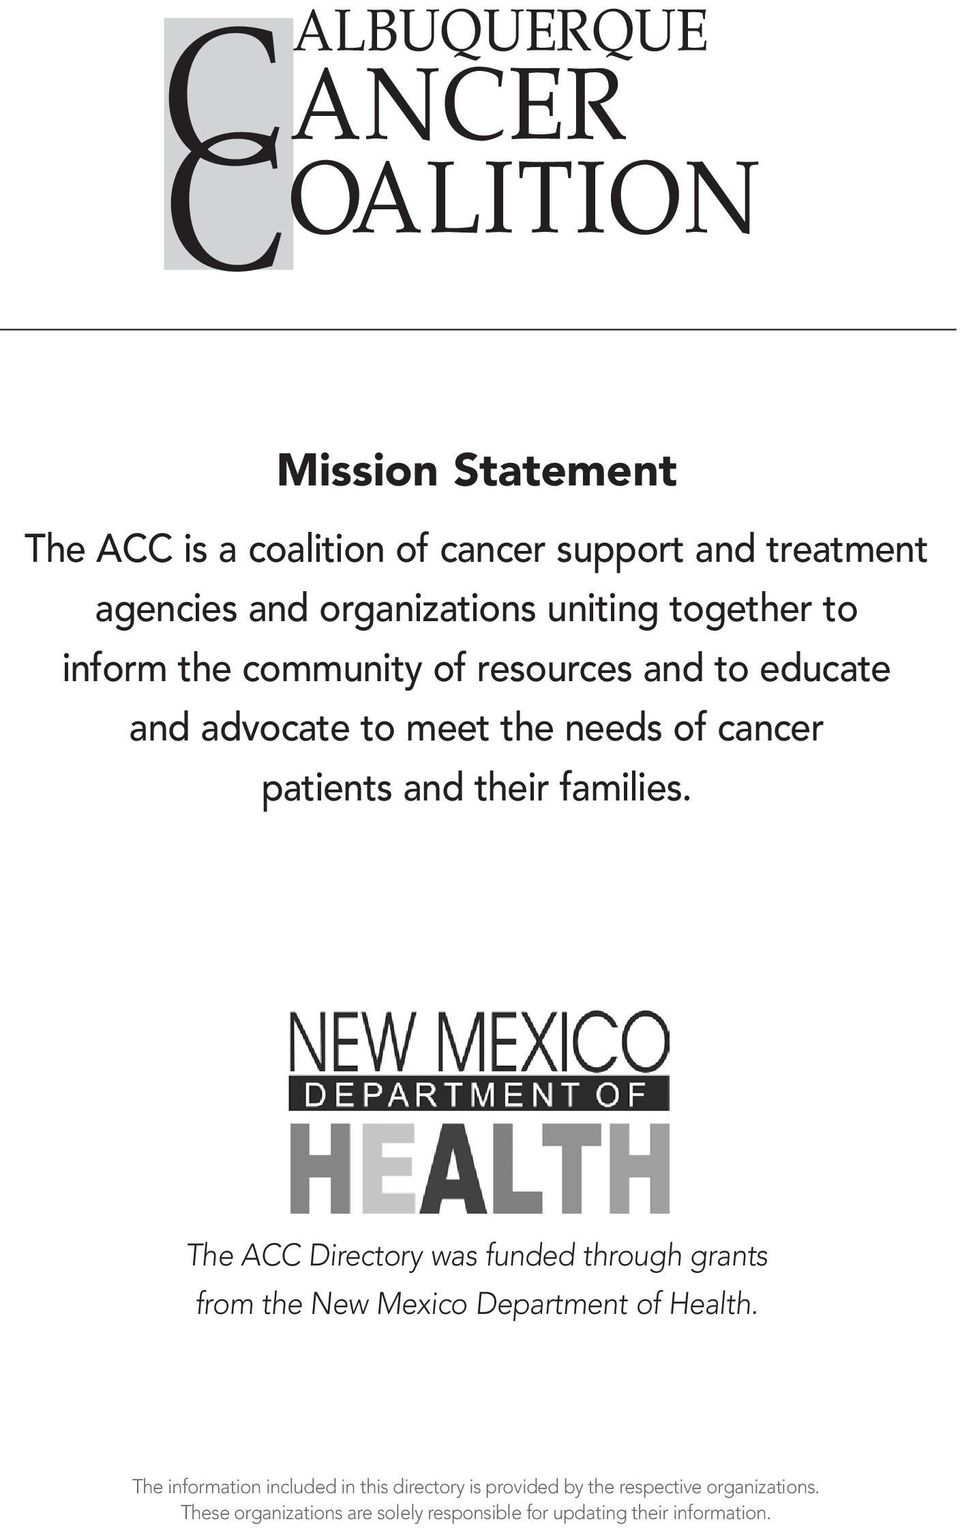 families. The ACC Directory was funded through grants from the New Mexico Department of Health.